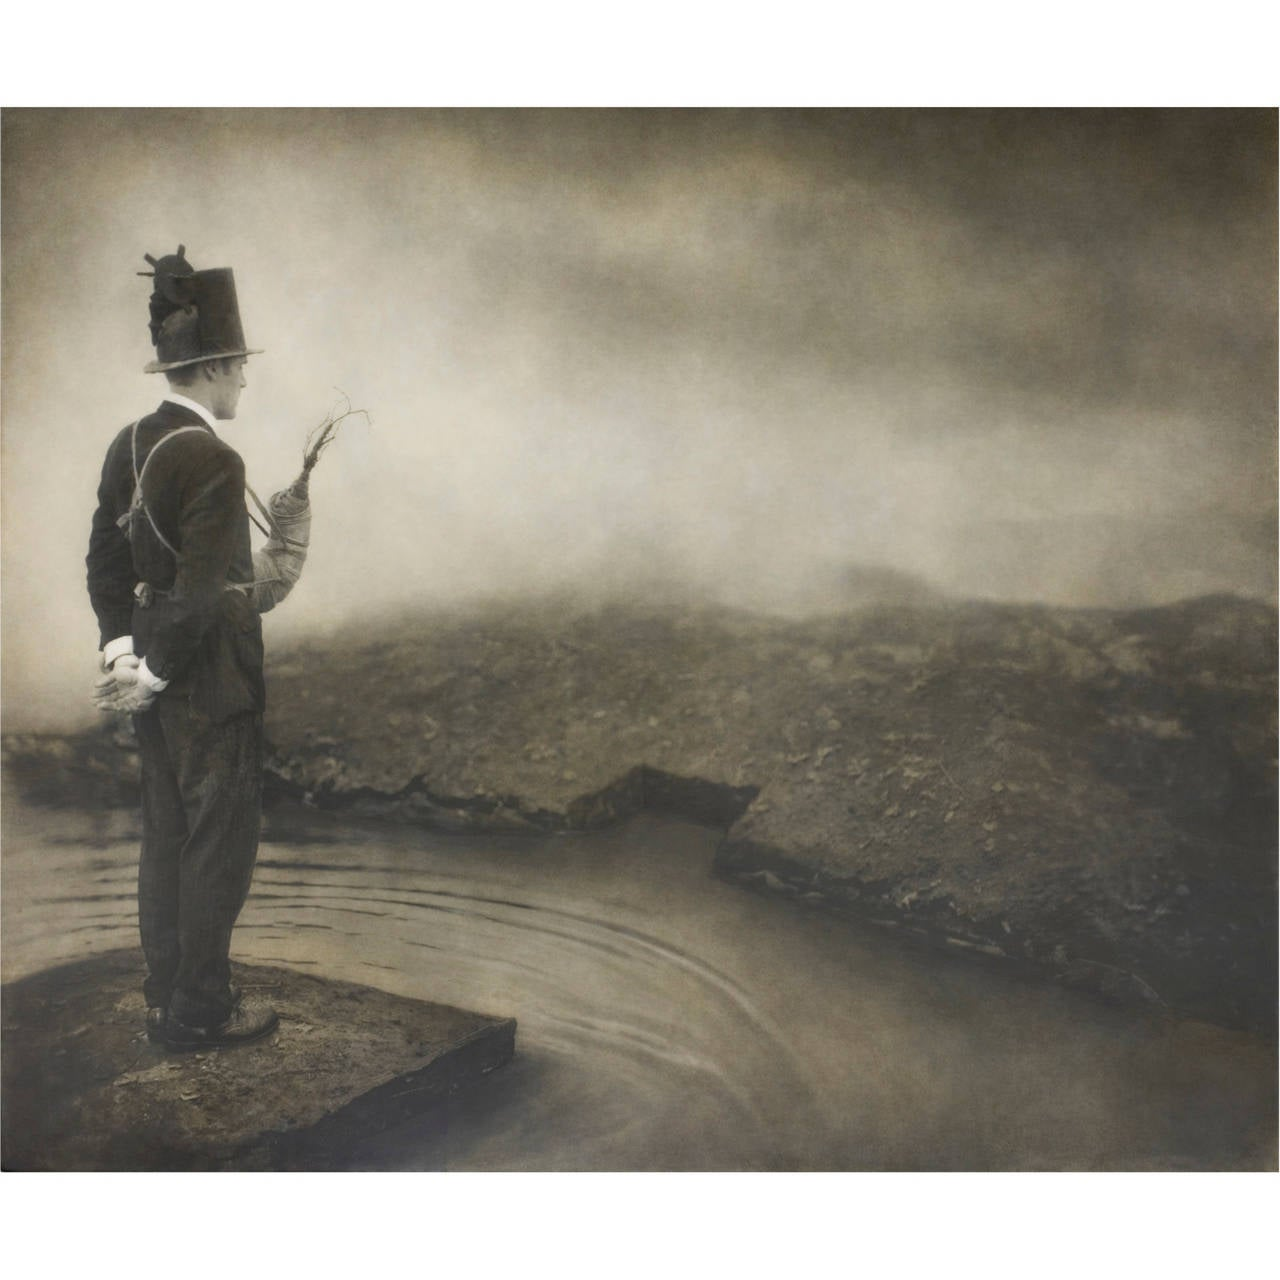 Robert and Shana ParkeHarrison Black and White Photograph - Promisedland